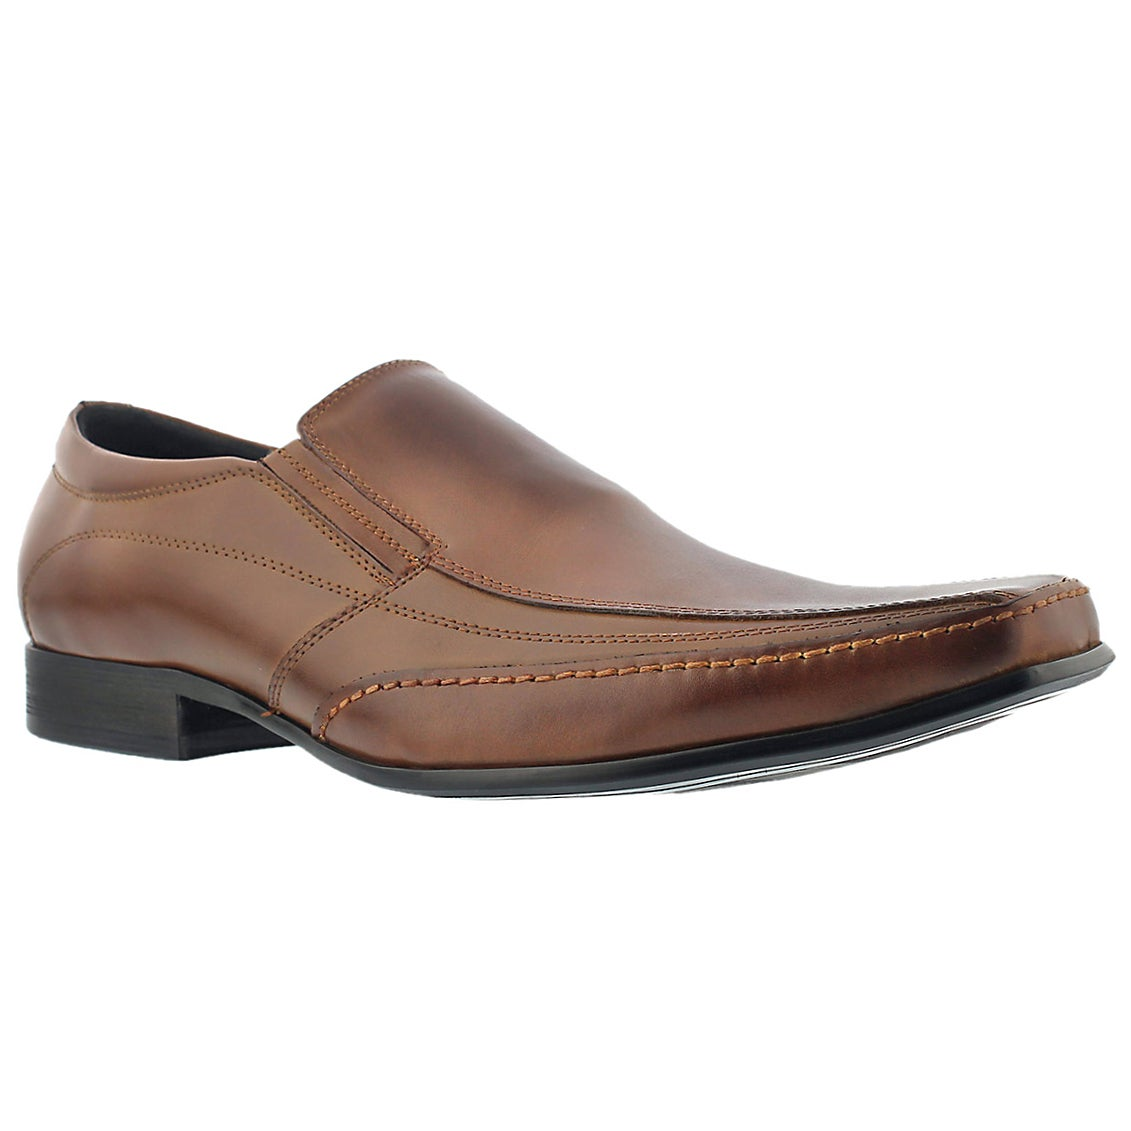 Mns Justin 2 cognac slip on dress shoe